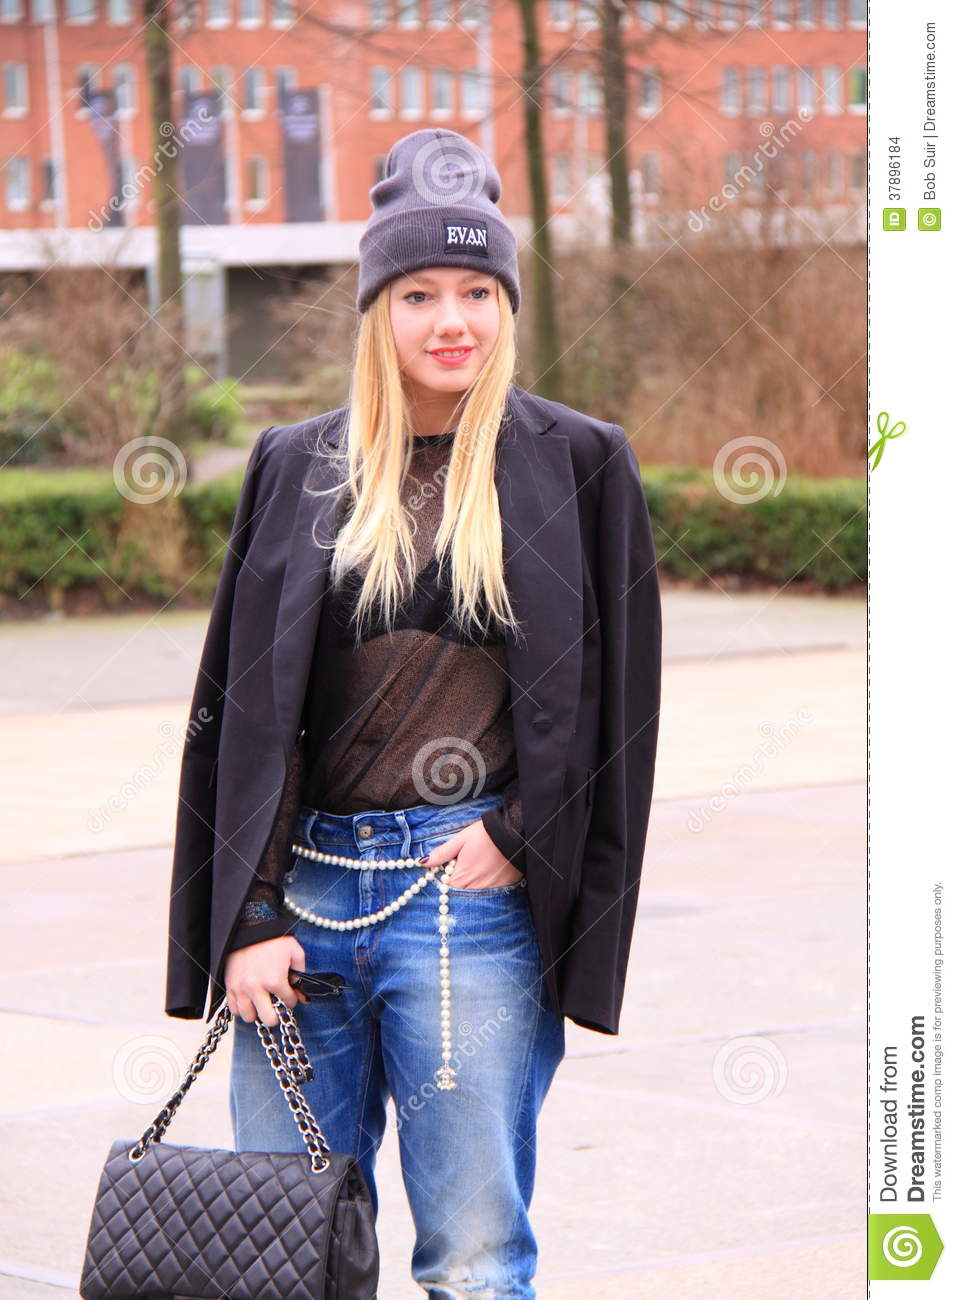 Blond Dutch Woman Street Fashion Editorial Photo 60770537